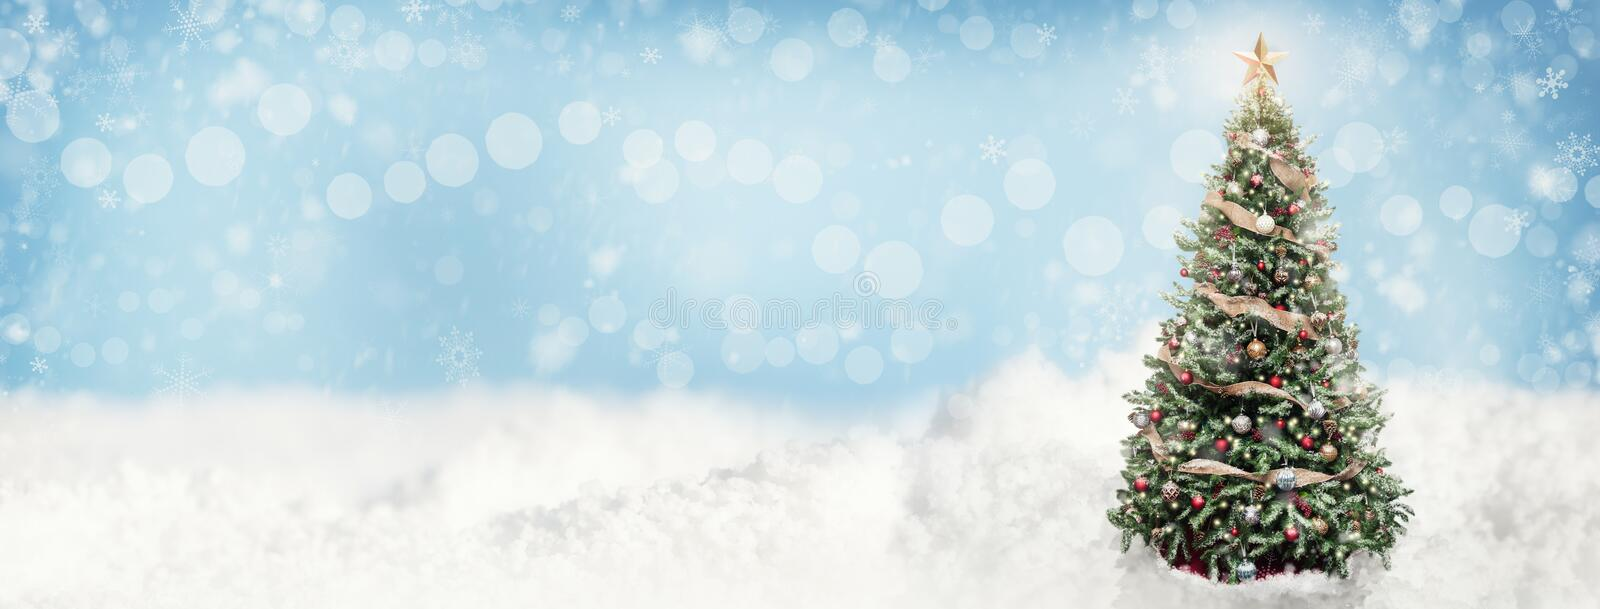 Christmas Snowy Scene Web Banner royalty free stock photo